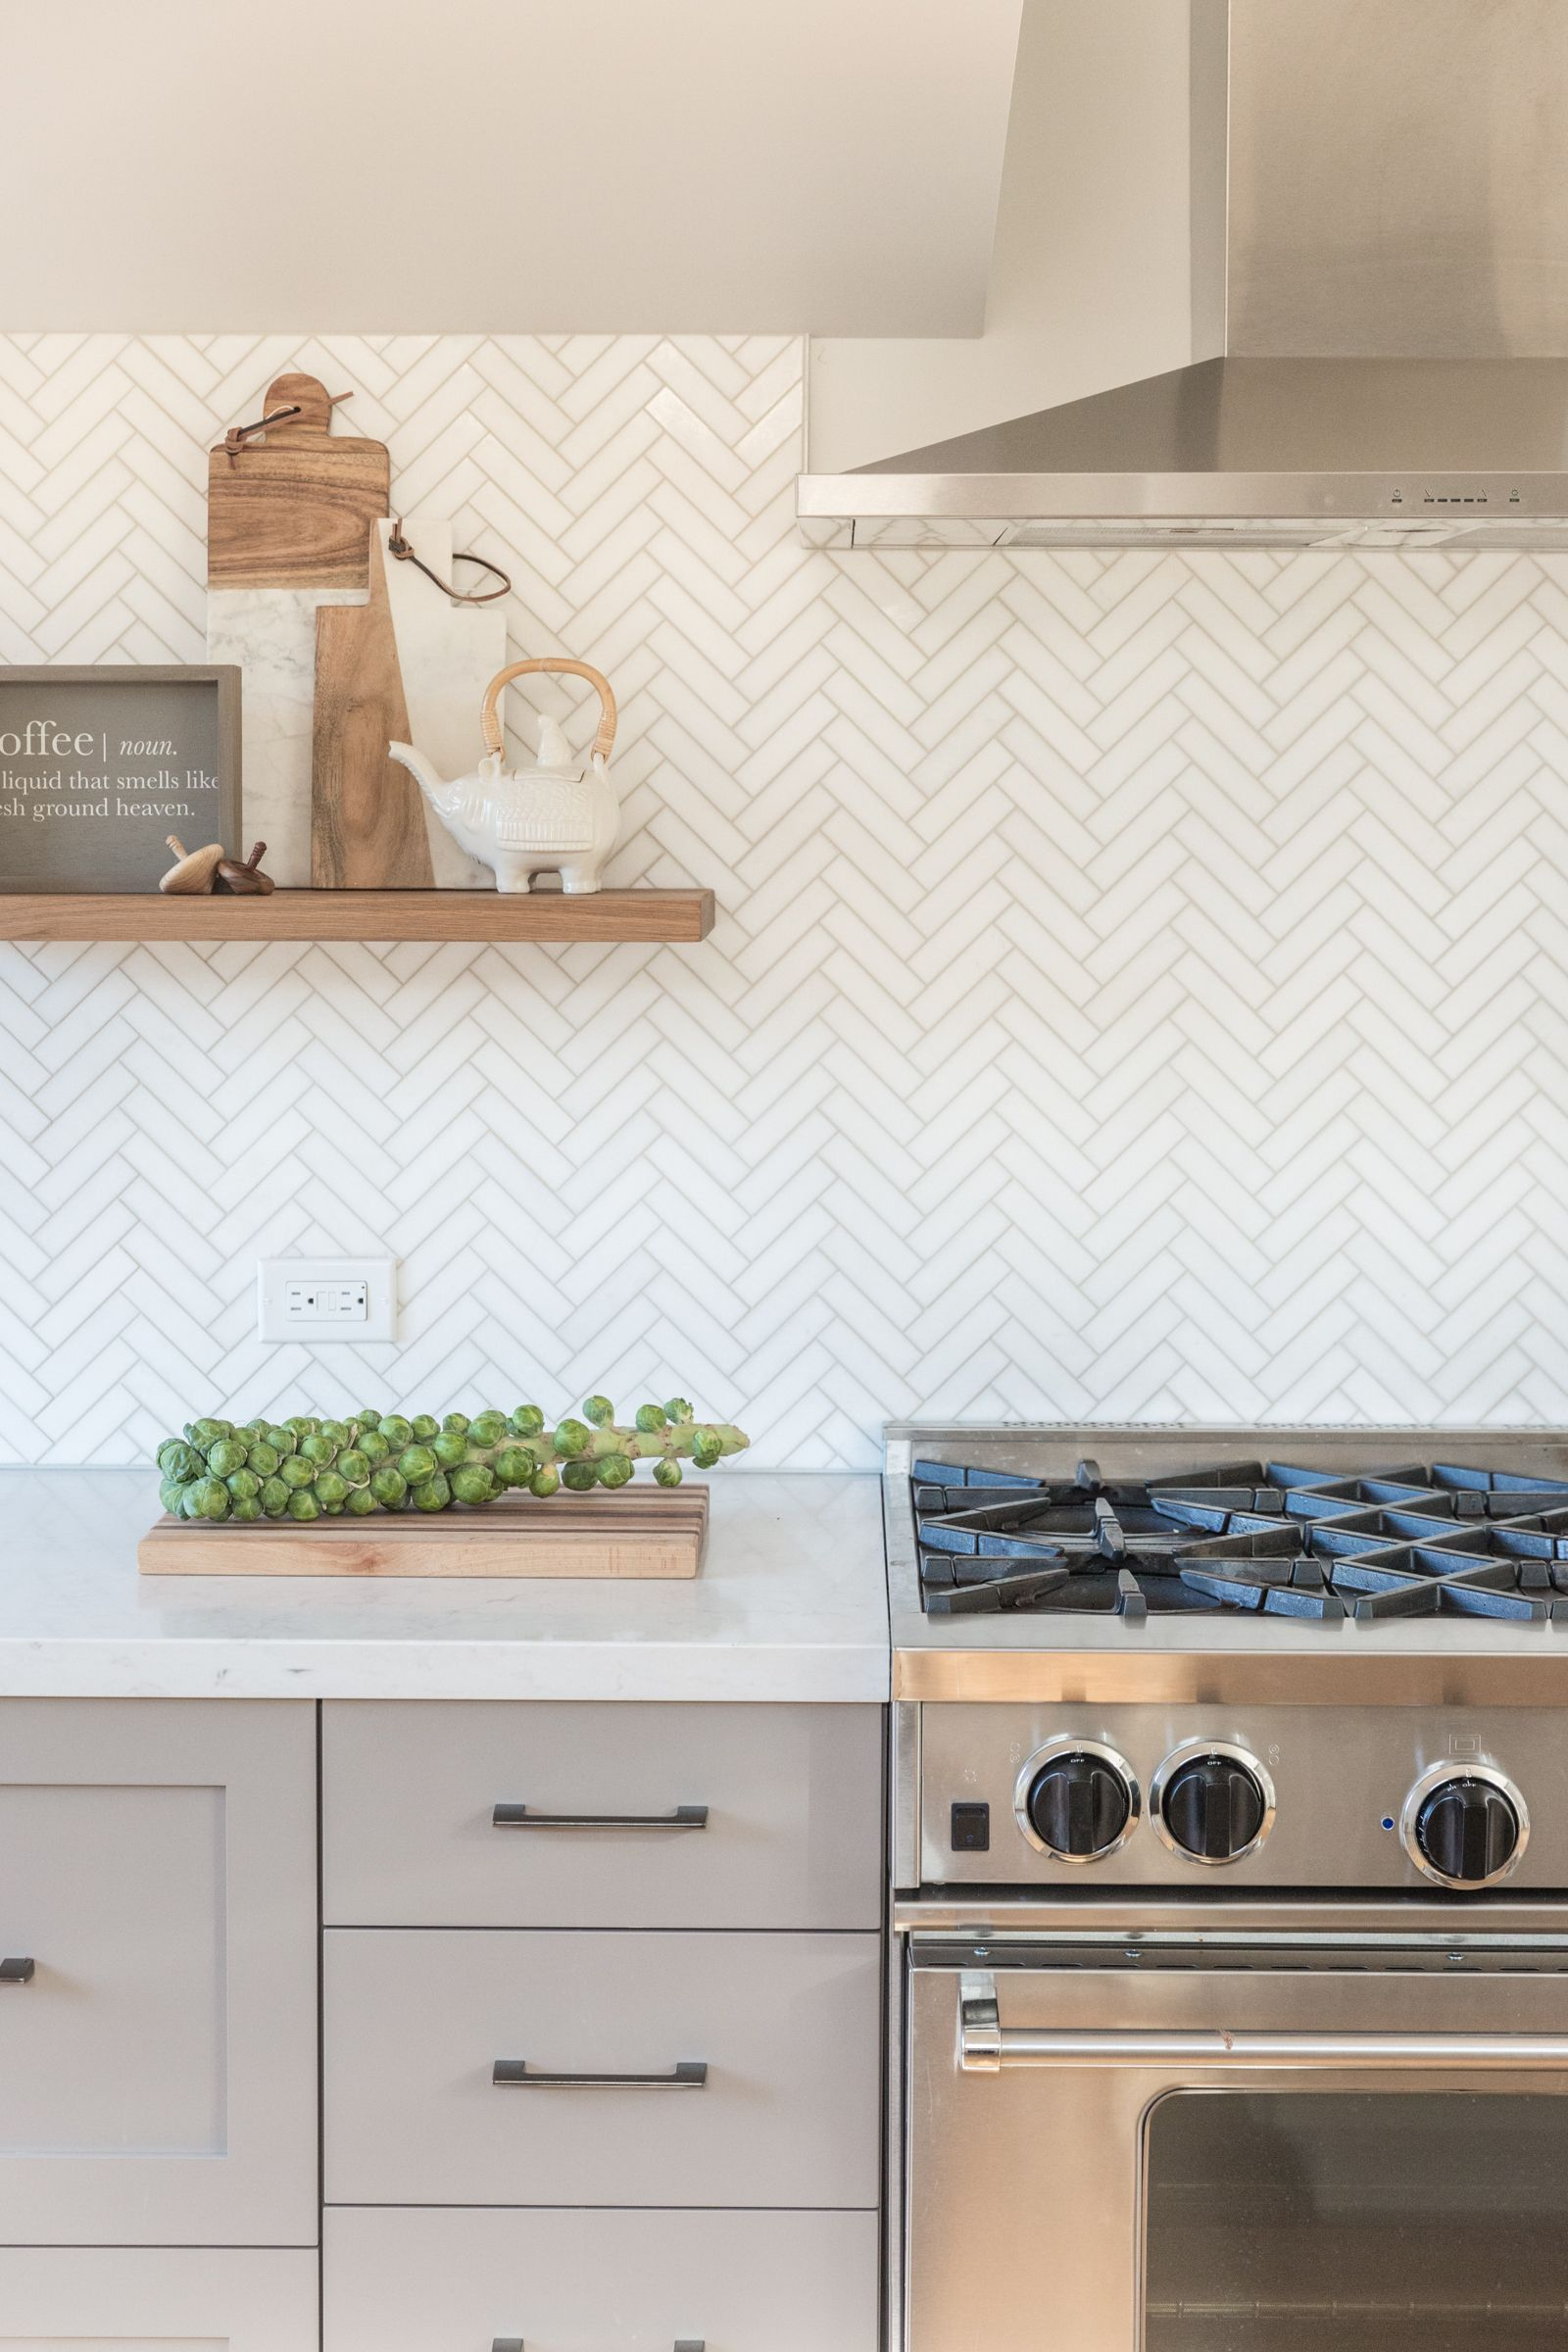 11 Types Of White Kitchen Splashback Tiles Best White Tiles For